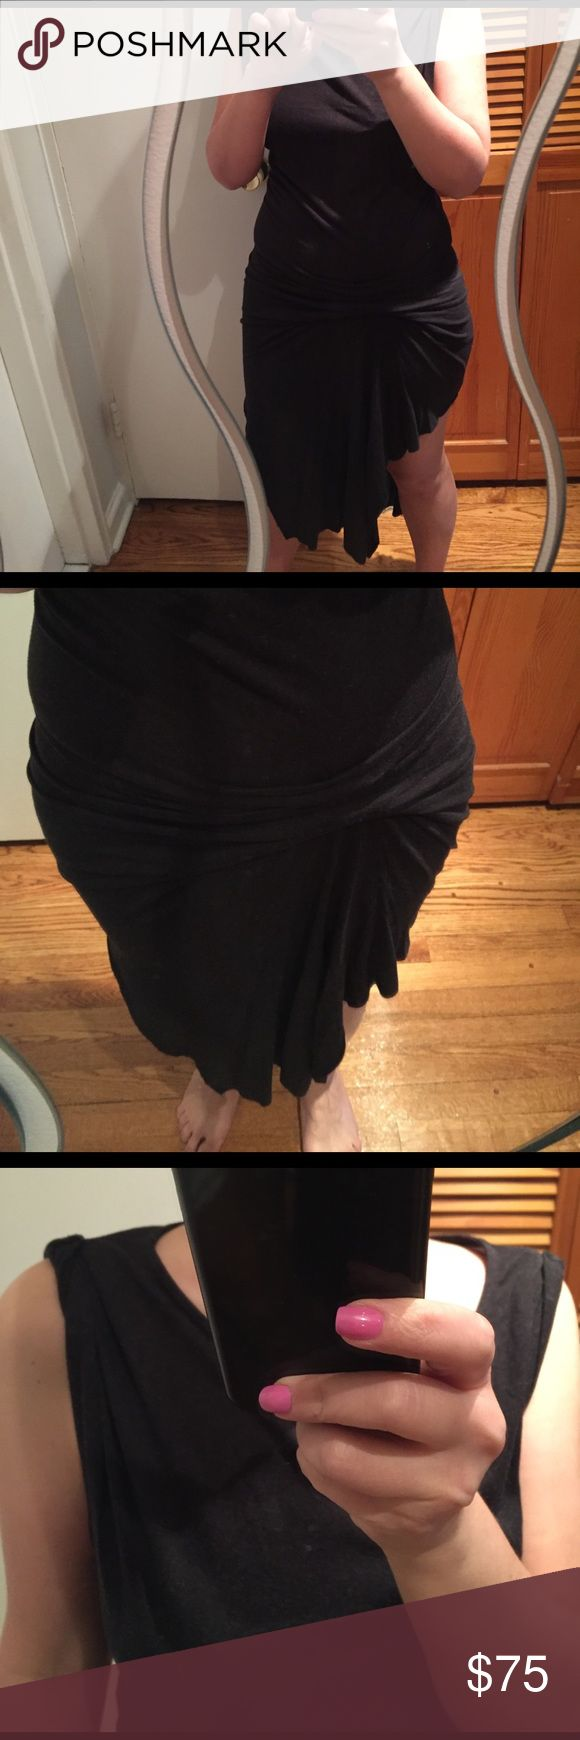 ALLSAINTS dress heather gray As all ALLSAINTS dresses - very sexy and unique- fabric is very thin and almost see through...structured short front and longer back - details on shoulders and front ( tried to show on pics) - dress has no damages and has been worn maybe 5 times max... All Saints Dresses Mini